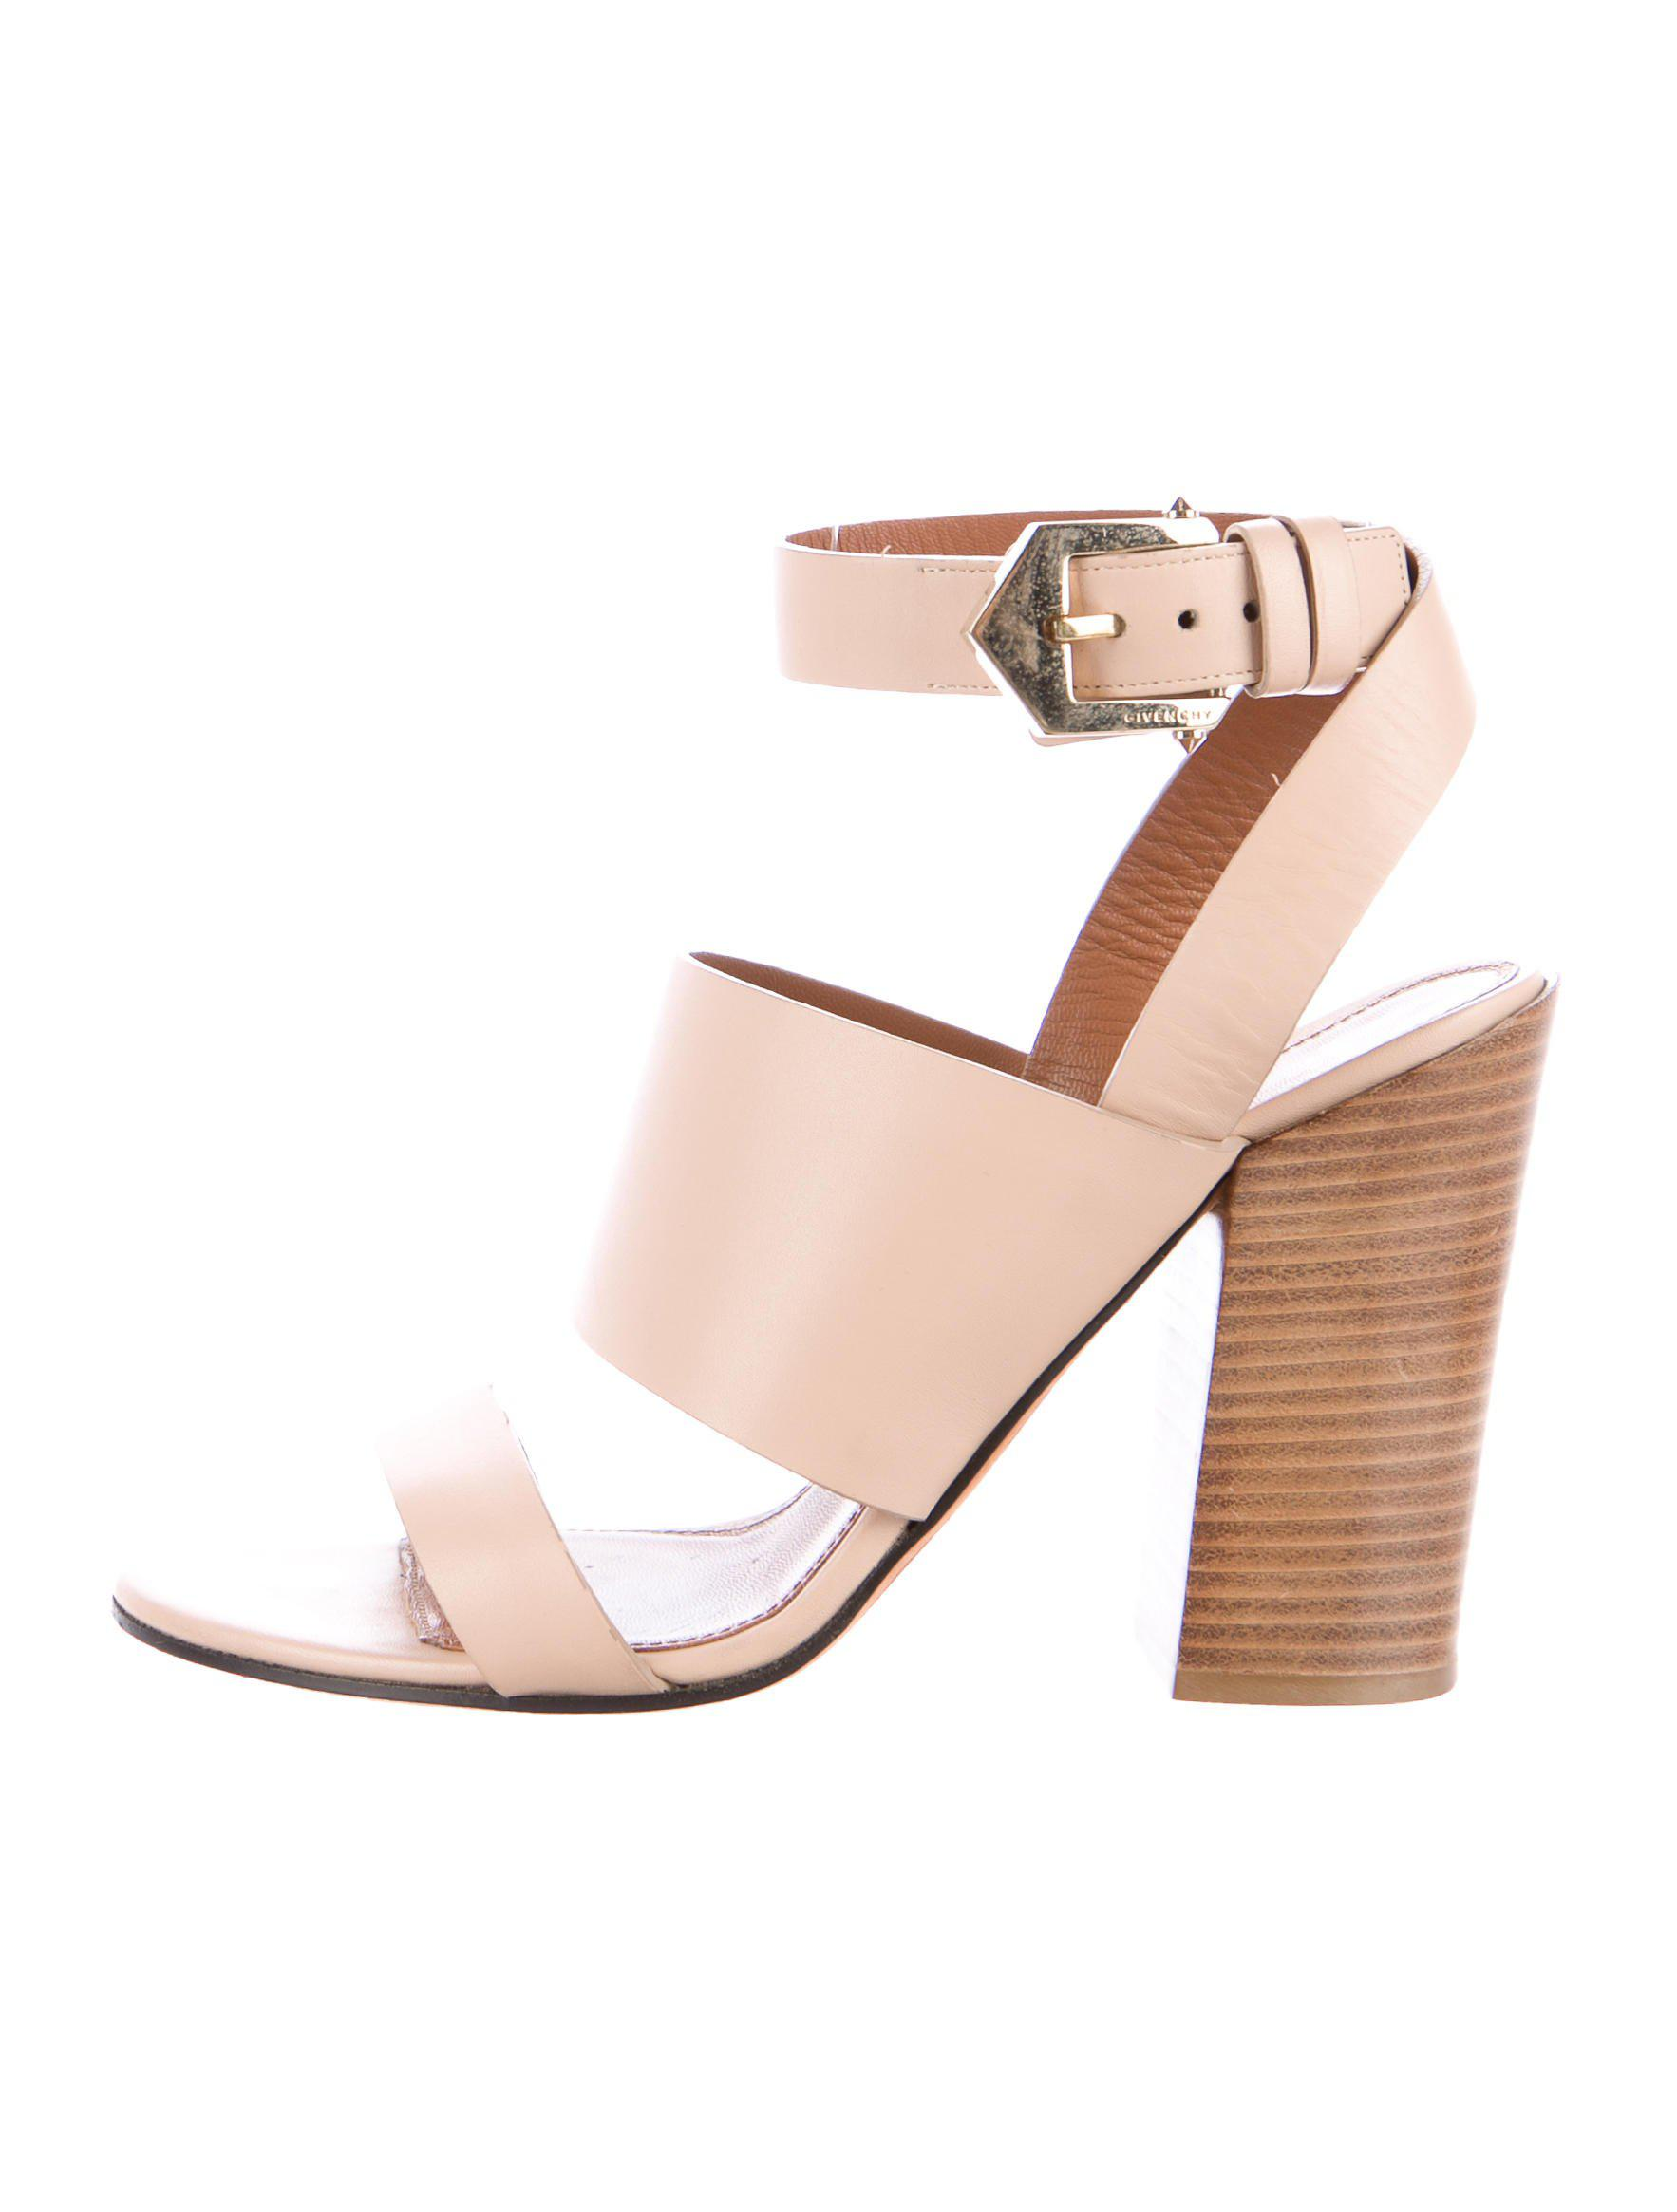 08fec91968d Gallery. Previously sold at  The RealReal · Women s Gold Sandals